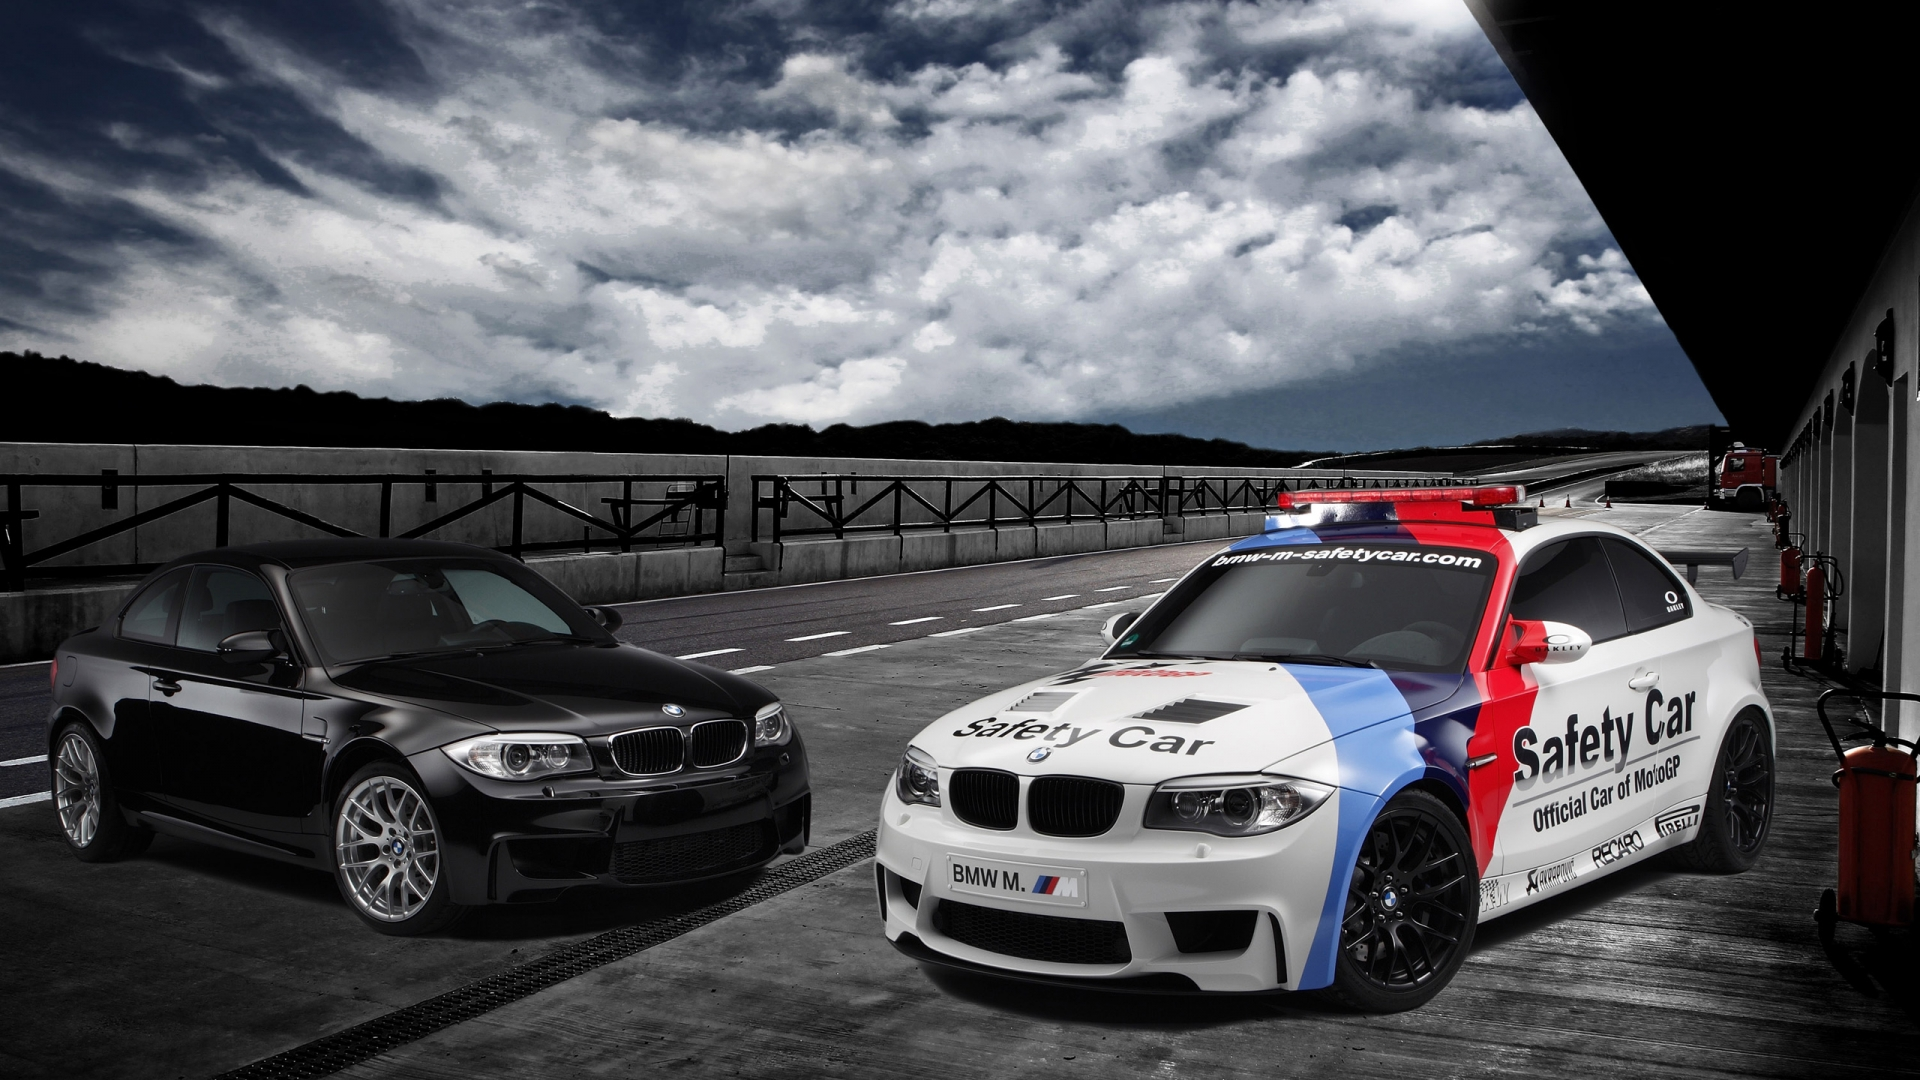 http://3.bp.blogspot.com/-xmaTeBKSHIc/UEheco5-HGI/AAAAAAAAI0c/r7m0mnxYahU/s0/bmw-1-series-m-coupe-safety-car-1920x1080-wallpaper.jpg